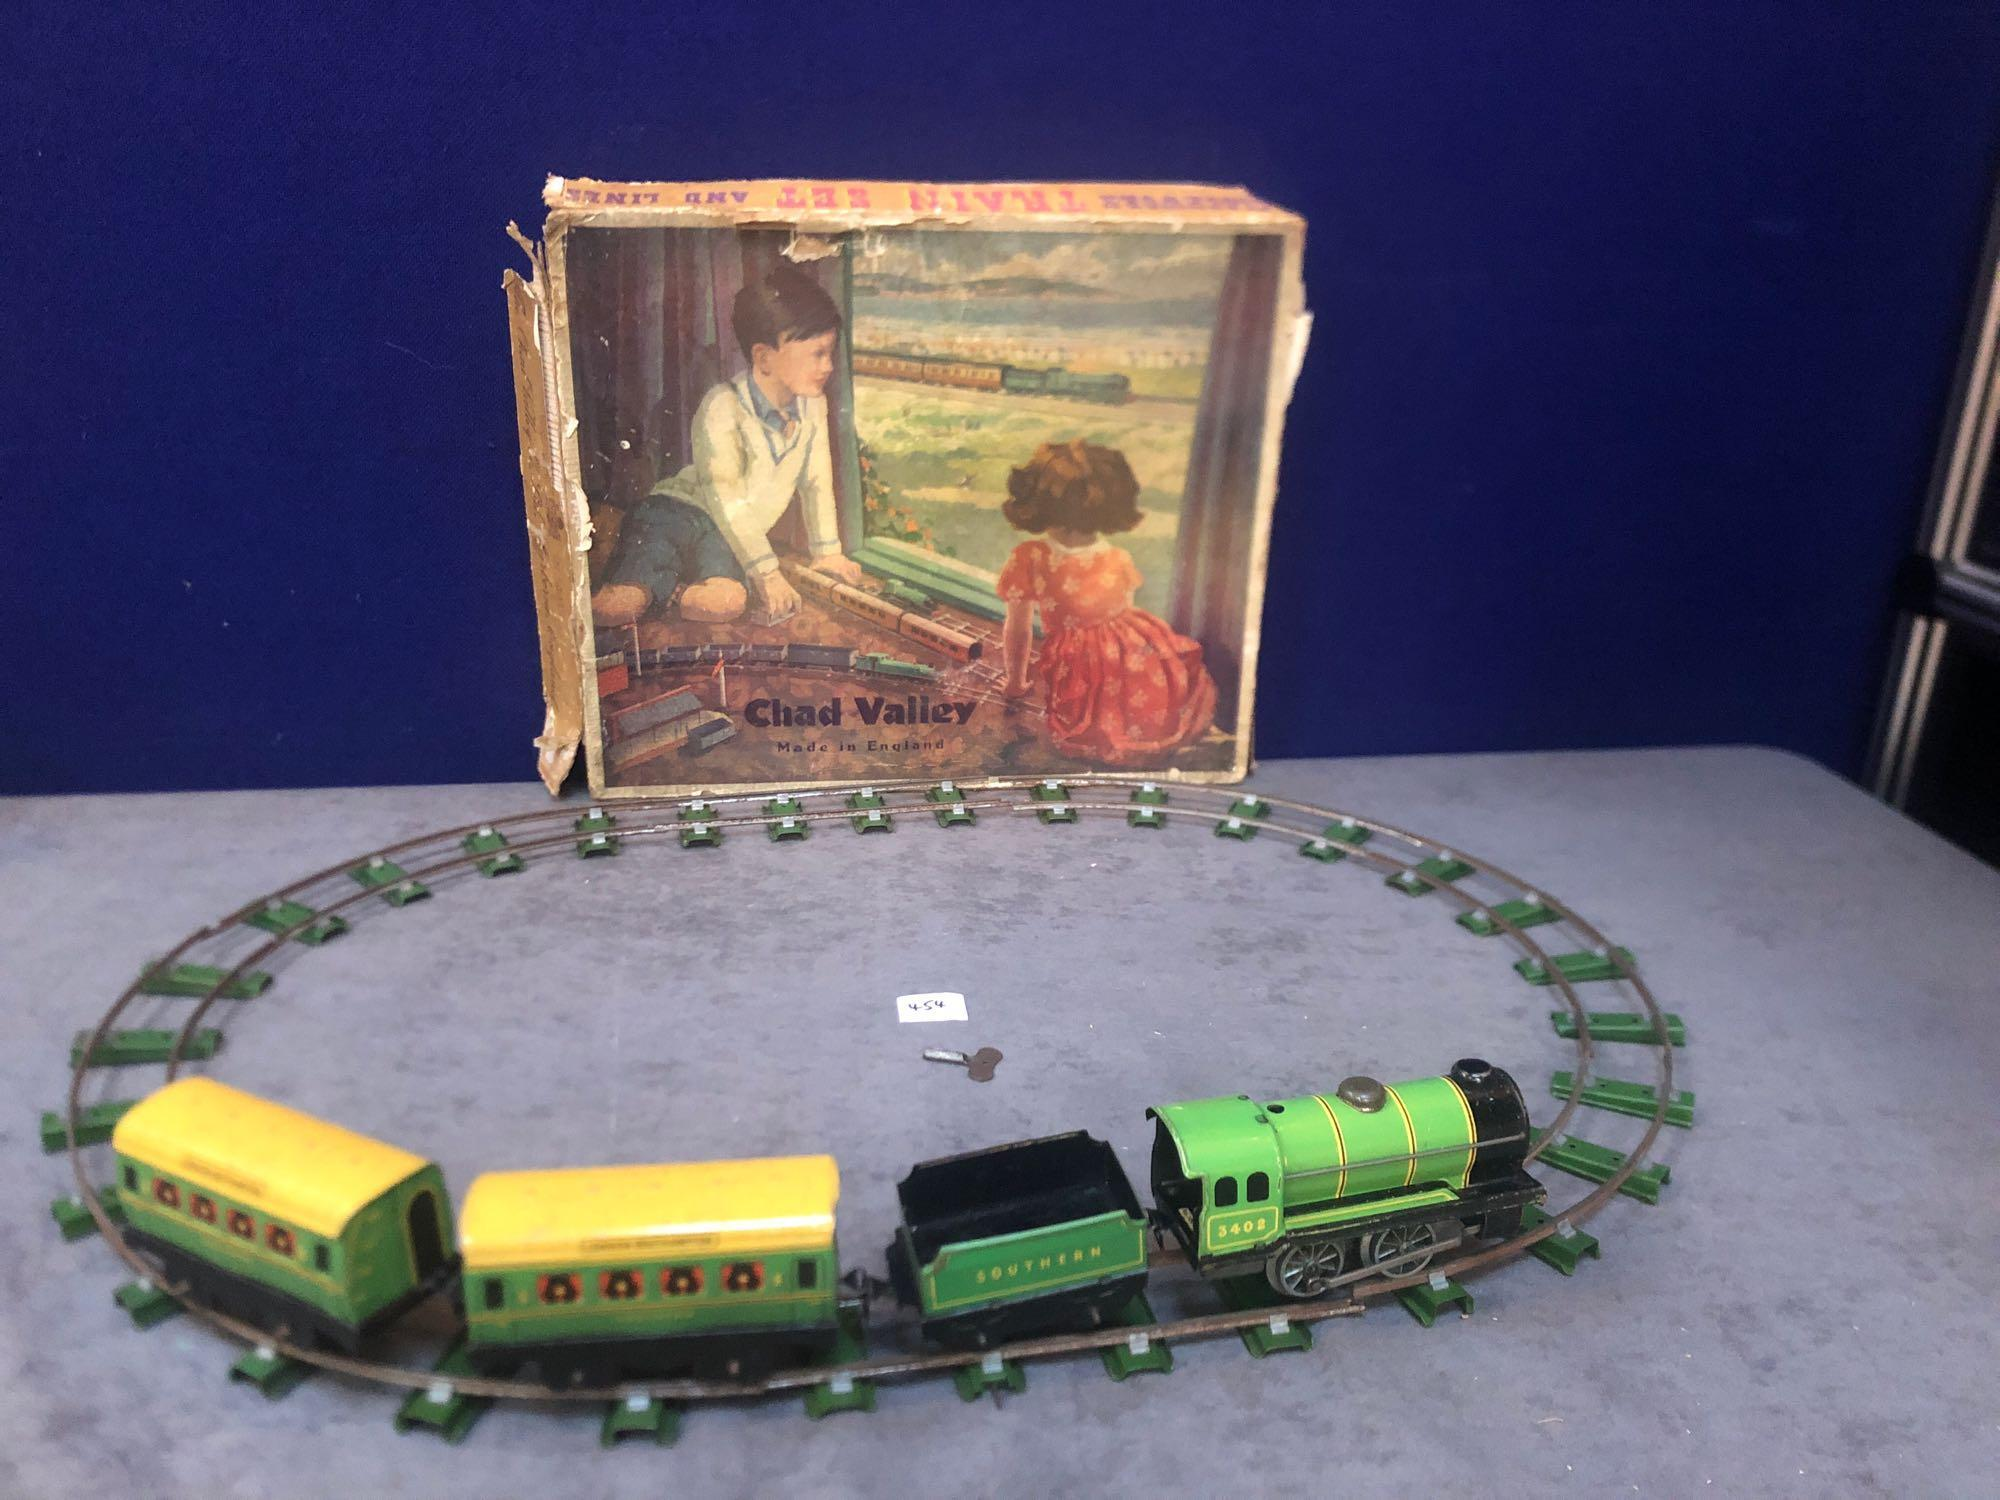 Chad Valley Vintage Clockwork Train Set And Lines In Original Box Circa 1930s